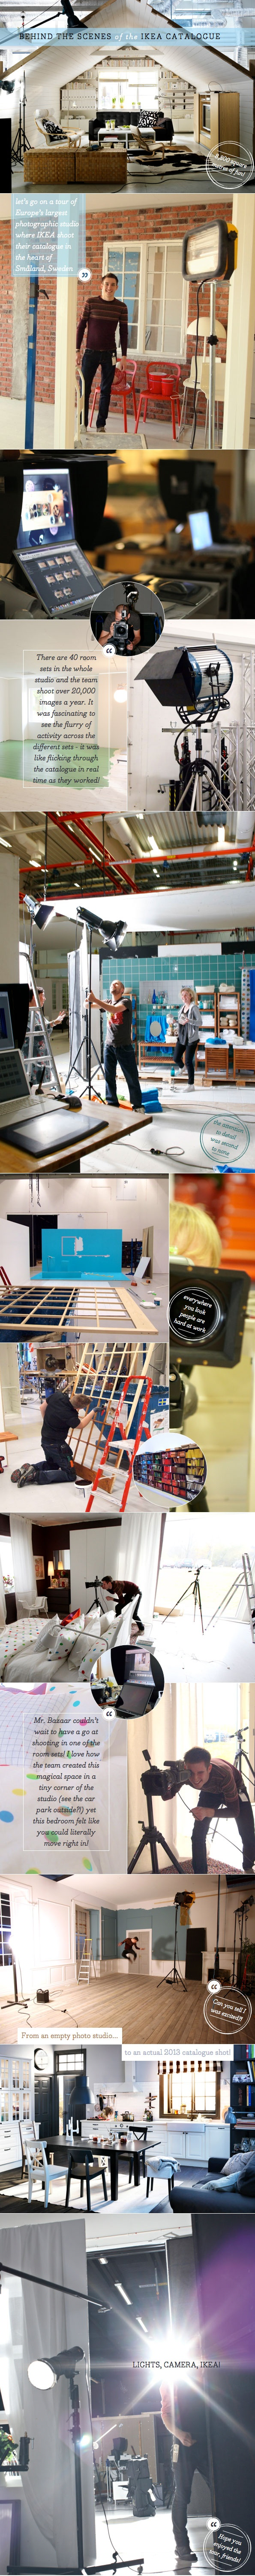 125 best ikea in the media images on pinterest - Ikea tours catalogue ...